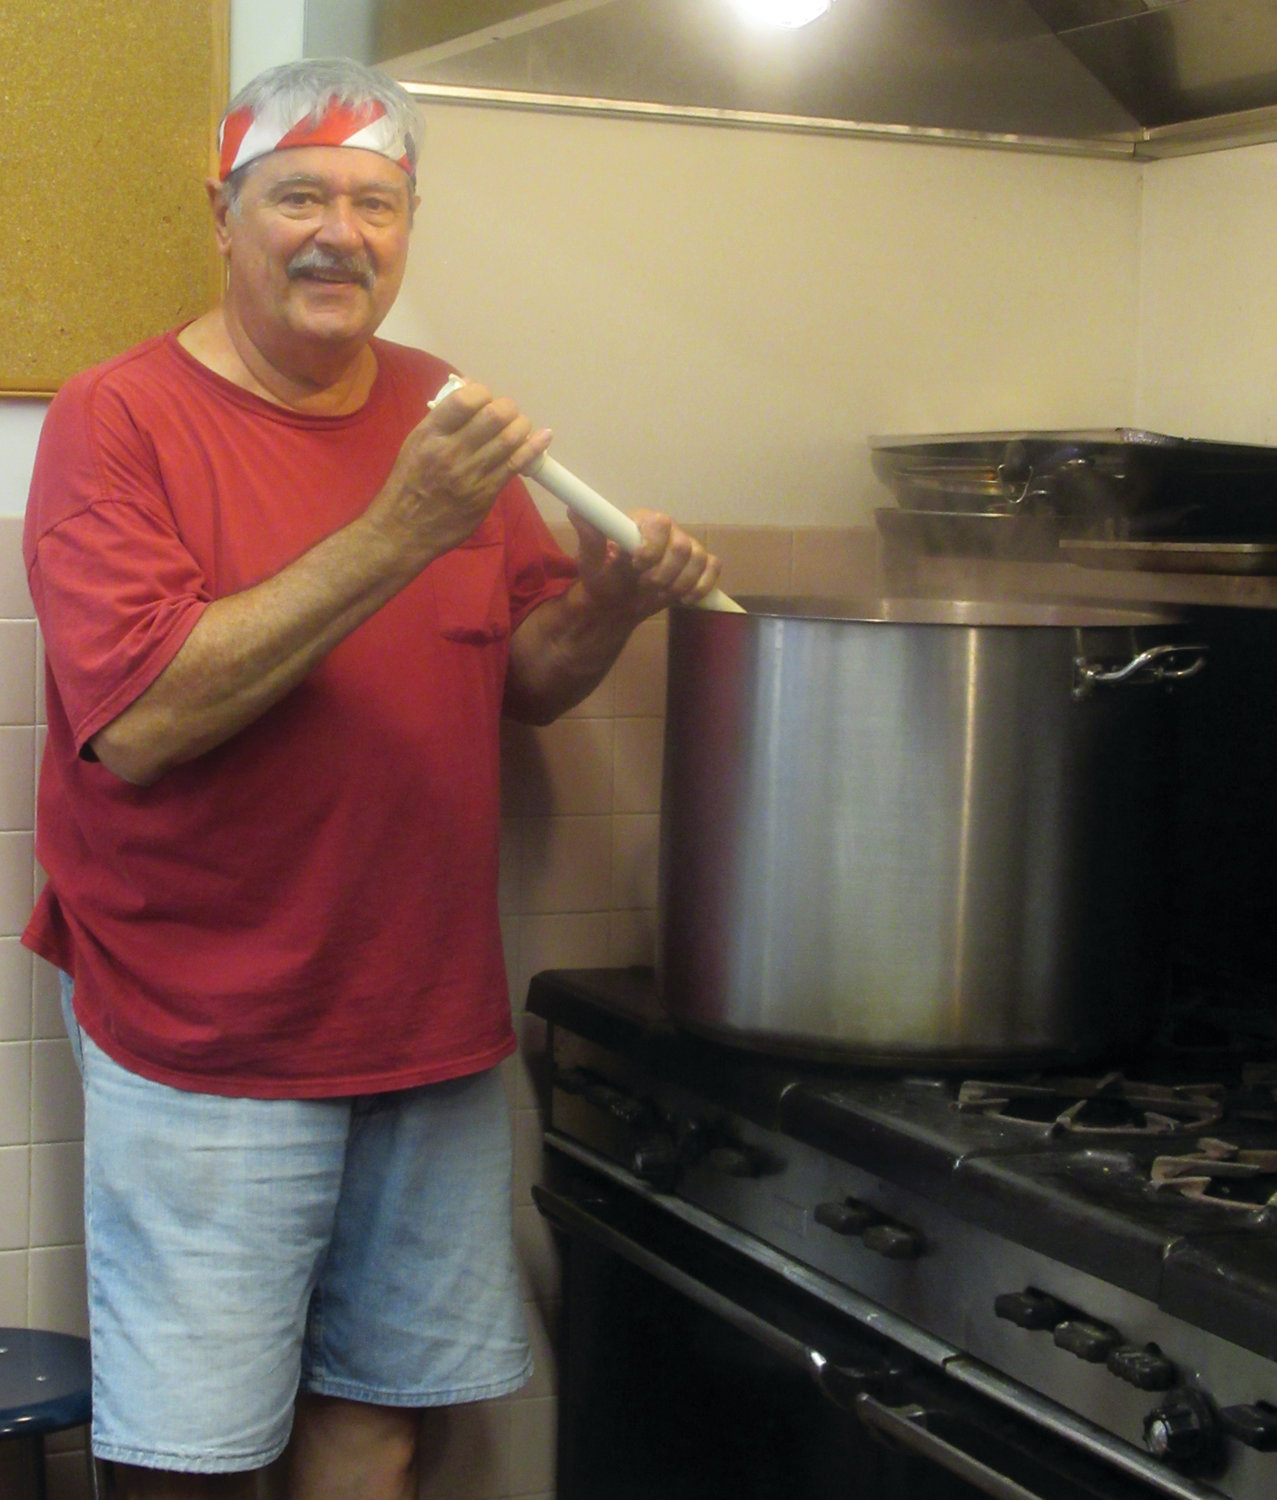 "SPECIAL SAUCE: ""The proof is in the gravy"" – so says Al Colannino as he stirs up a special batch of Italian sauce that will cover countless plates of macaroni and other Italian foods during this weekend's 91st Feast and Festival in Johnston."